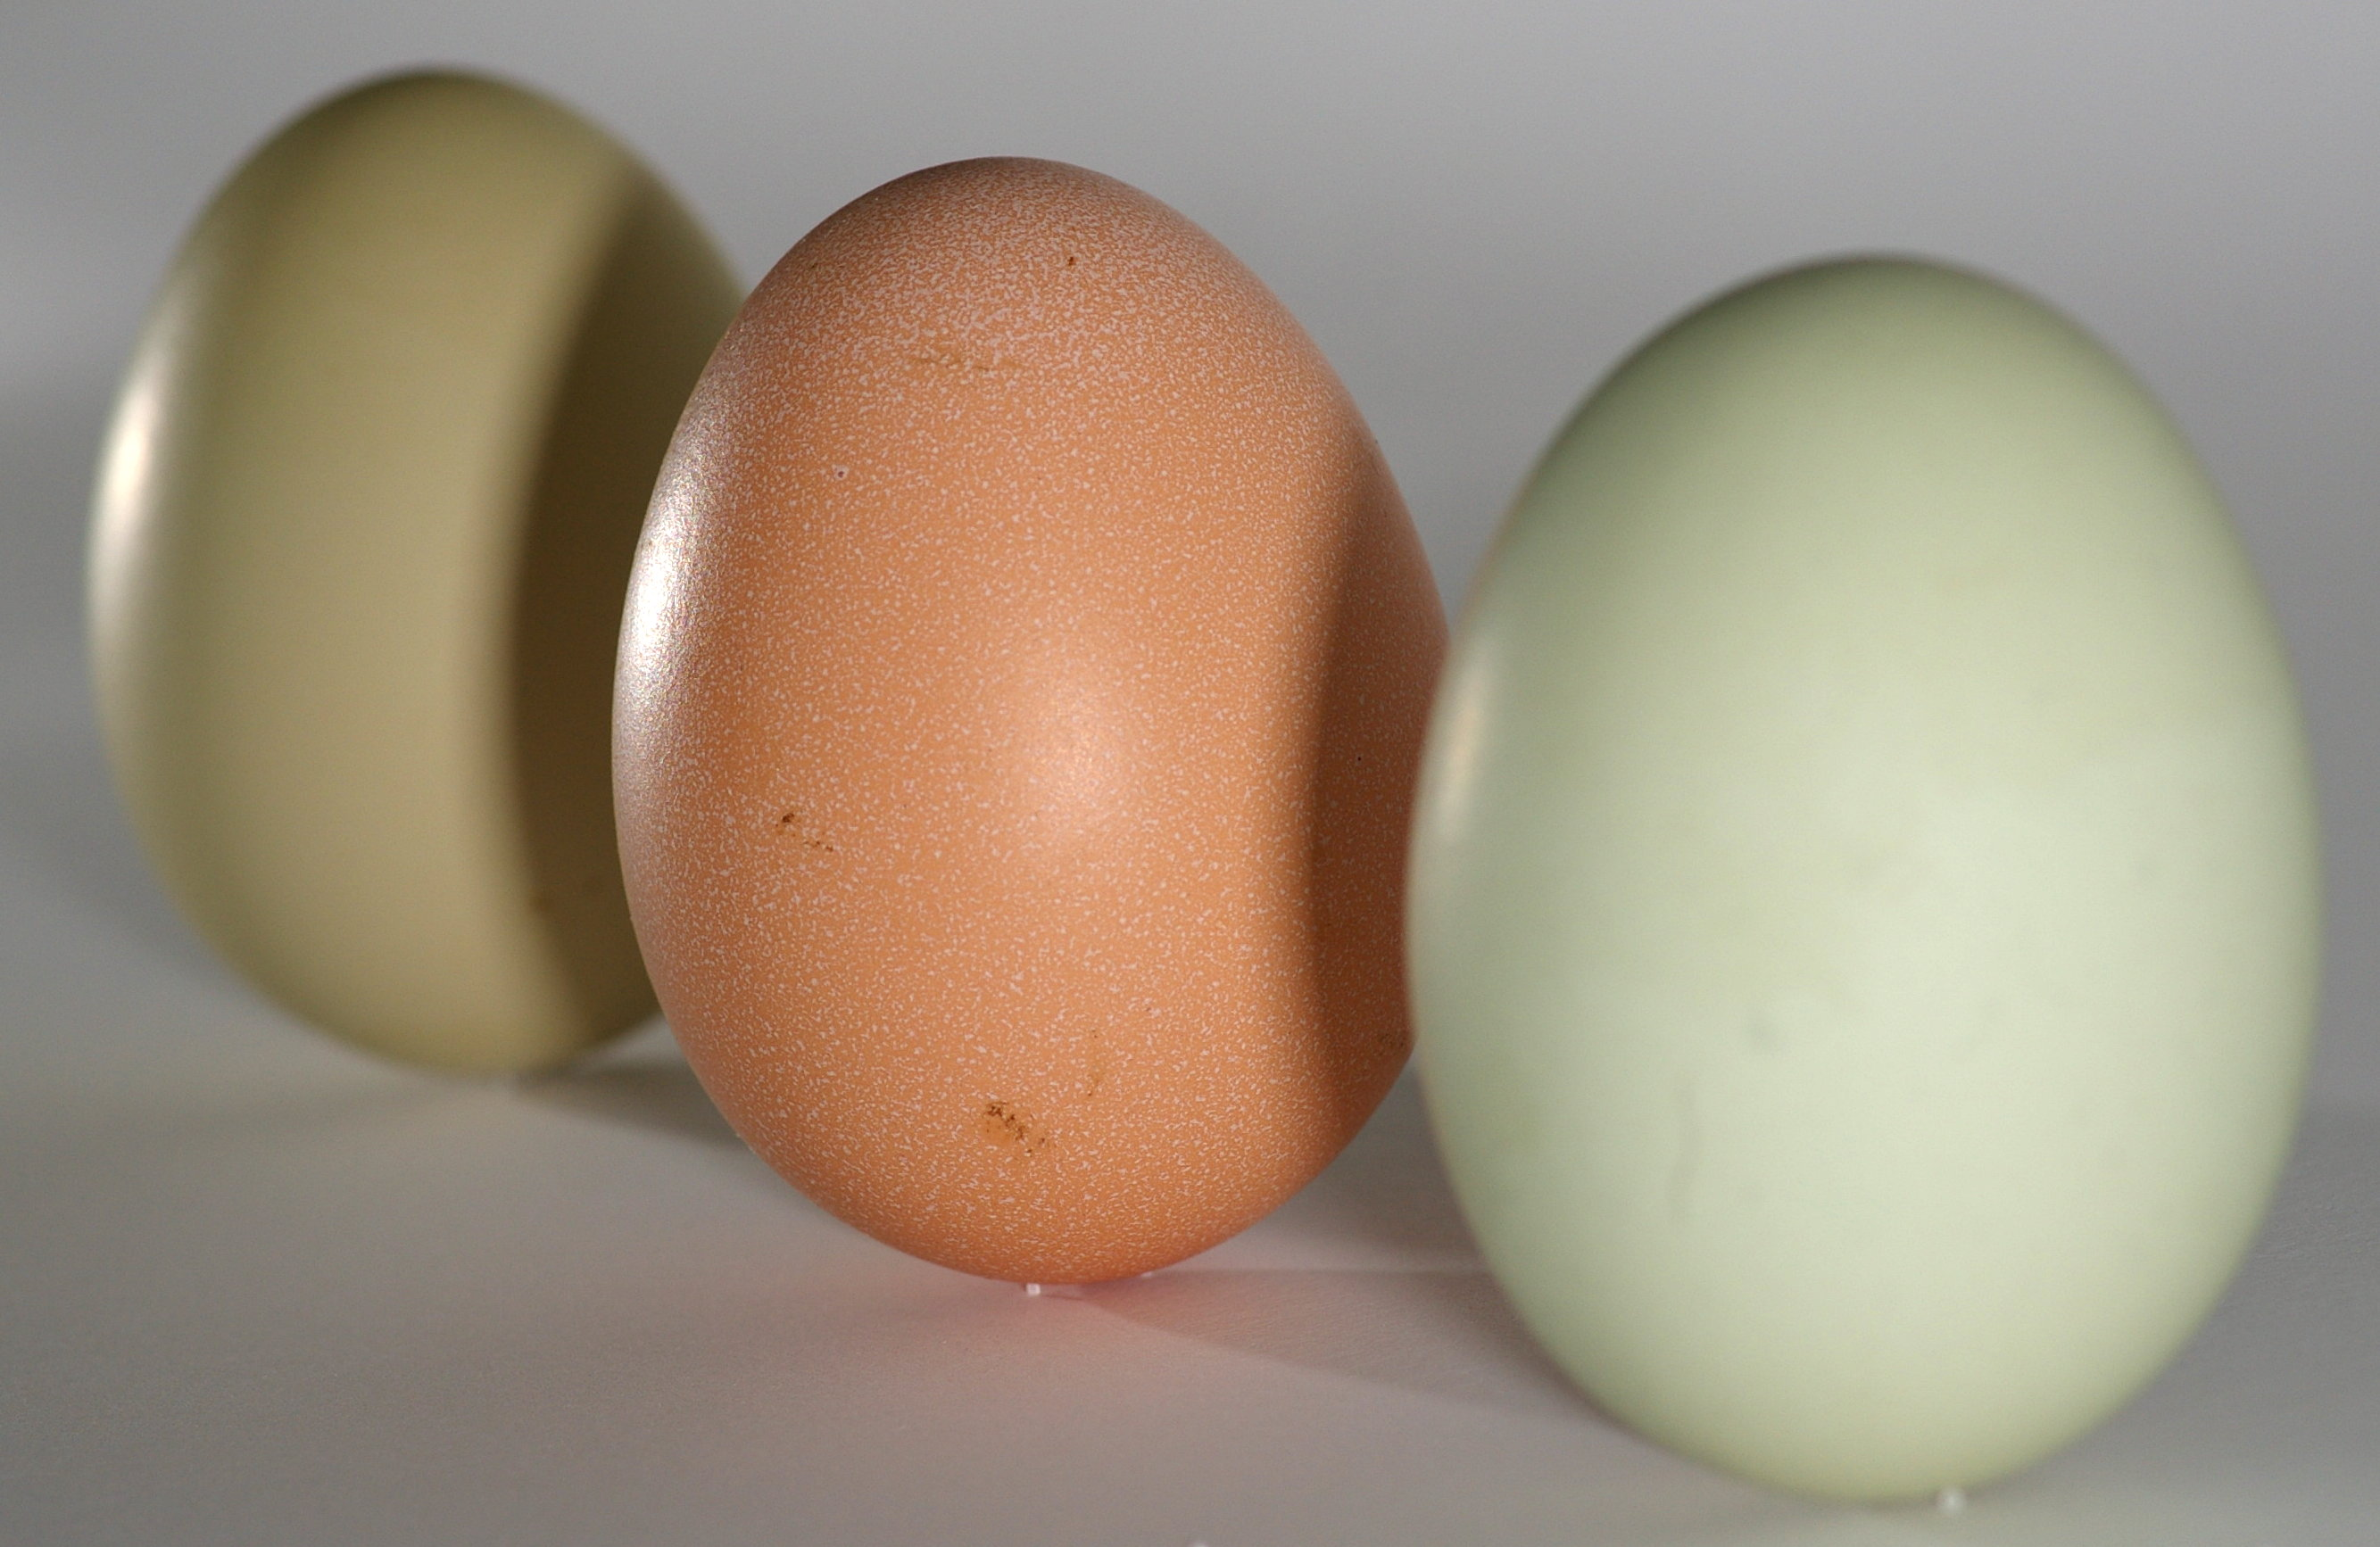 Can Eggs Be Kept At Room Temperature